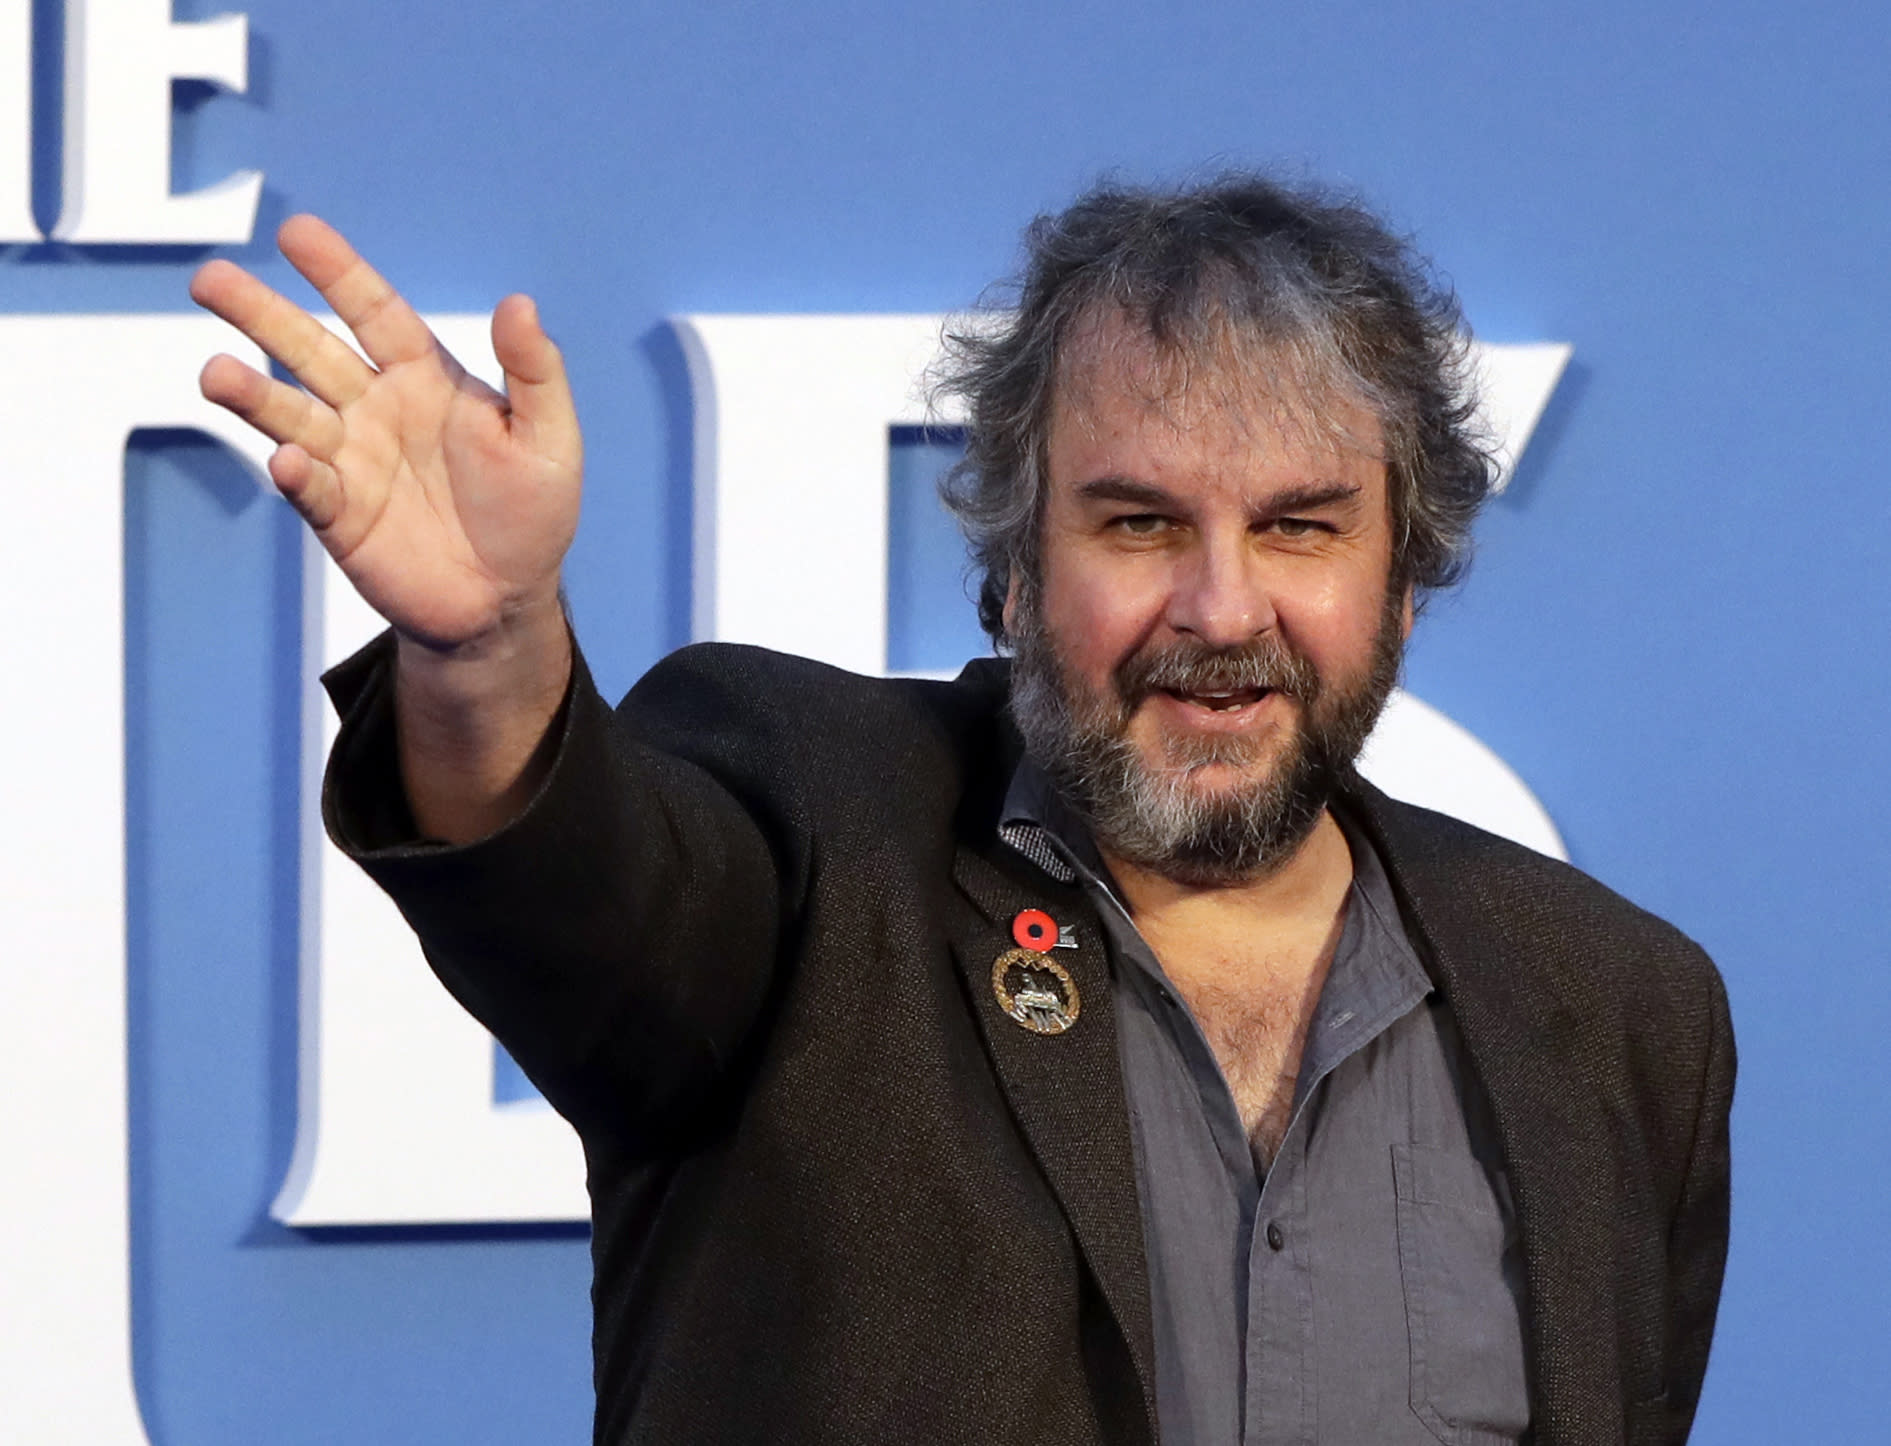 "FILE - In this file photo dated Thursday, Sept. 15, 2016, film director Peter Jackson poses for photographers at the World premiere of the Beatles movie, in London. According to an announcement Tuesday Aug. 21, 2018, Jackson's new film ""They Shall Not Grow Old"" a documentary that transforms grainy footage from World War I into color, will have its world premiere at the London Film Festival in October. (AP Photo/Kirsty Wigglesworth, FILE)"